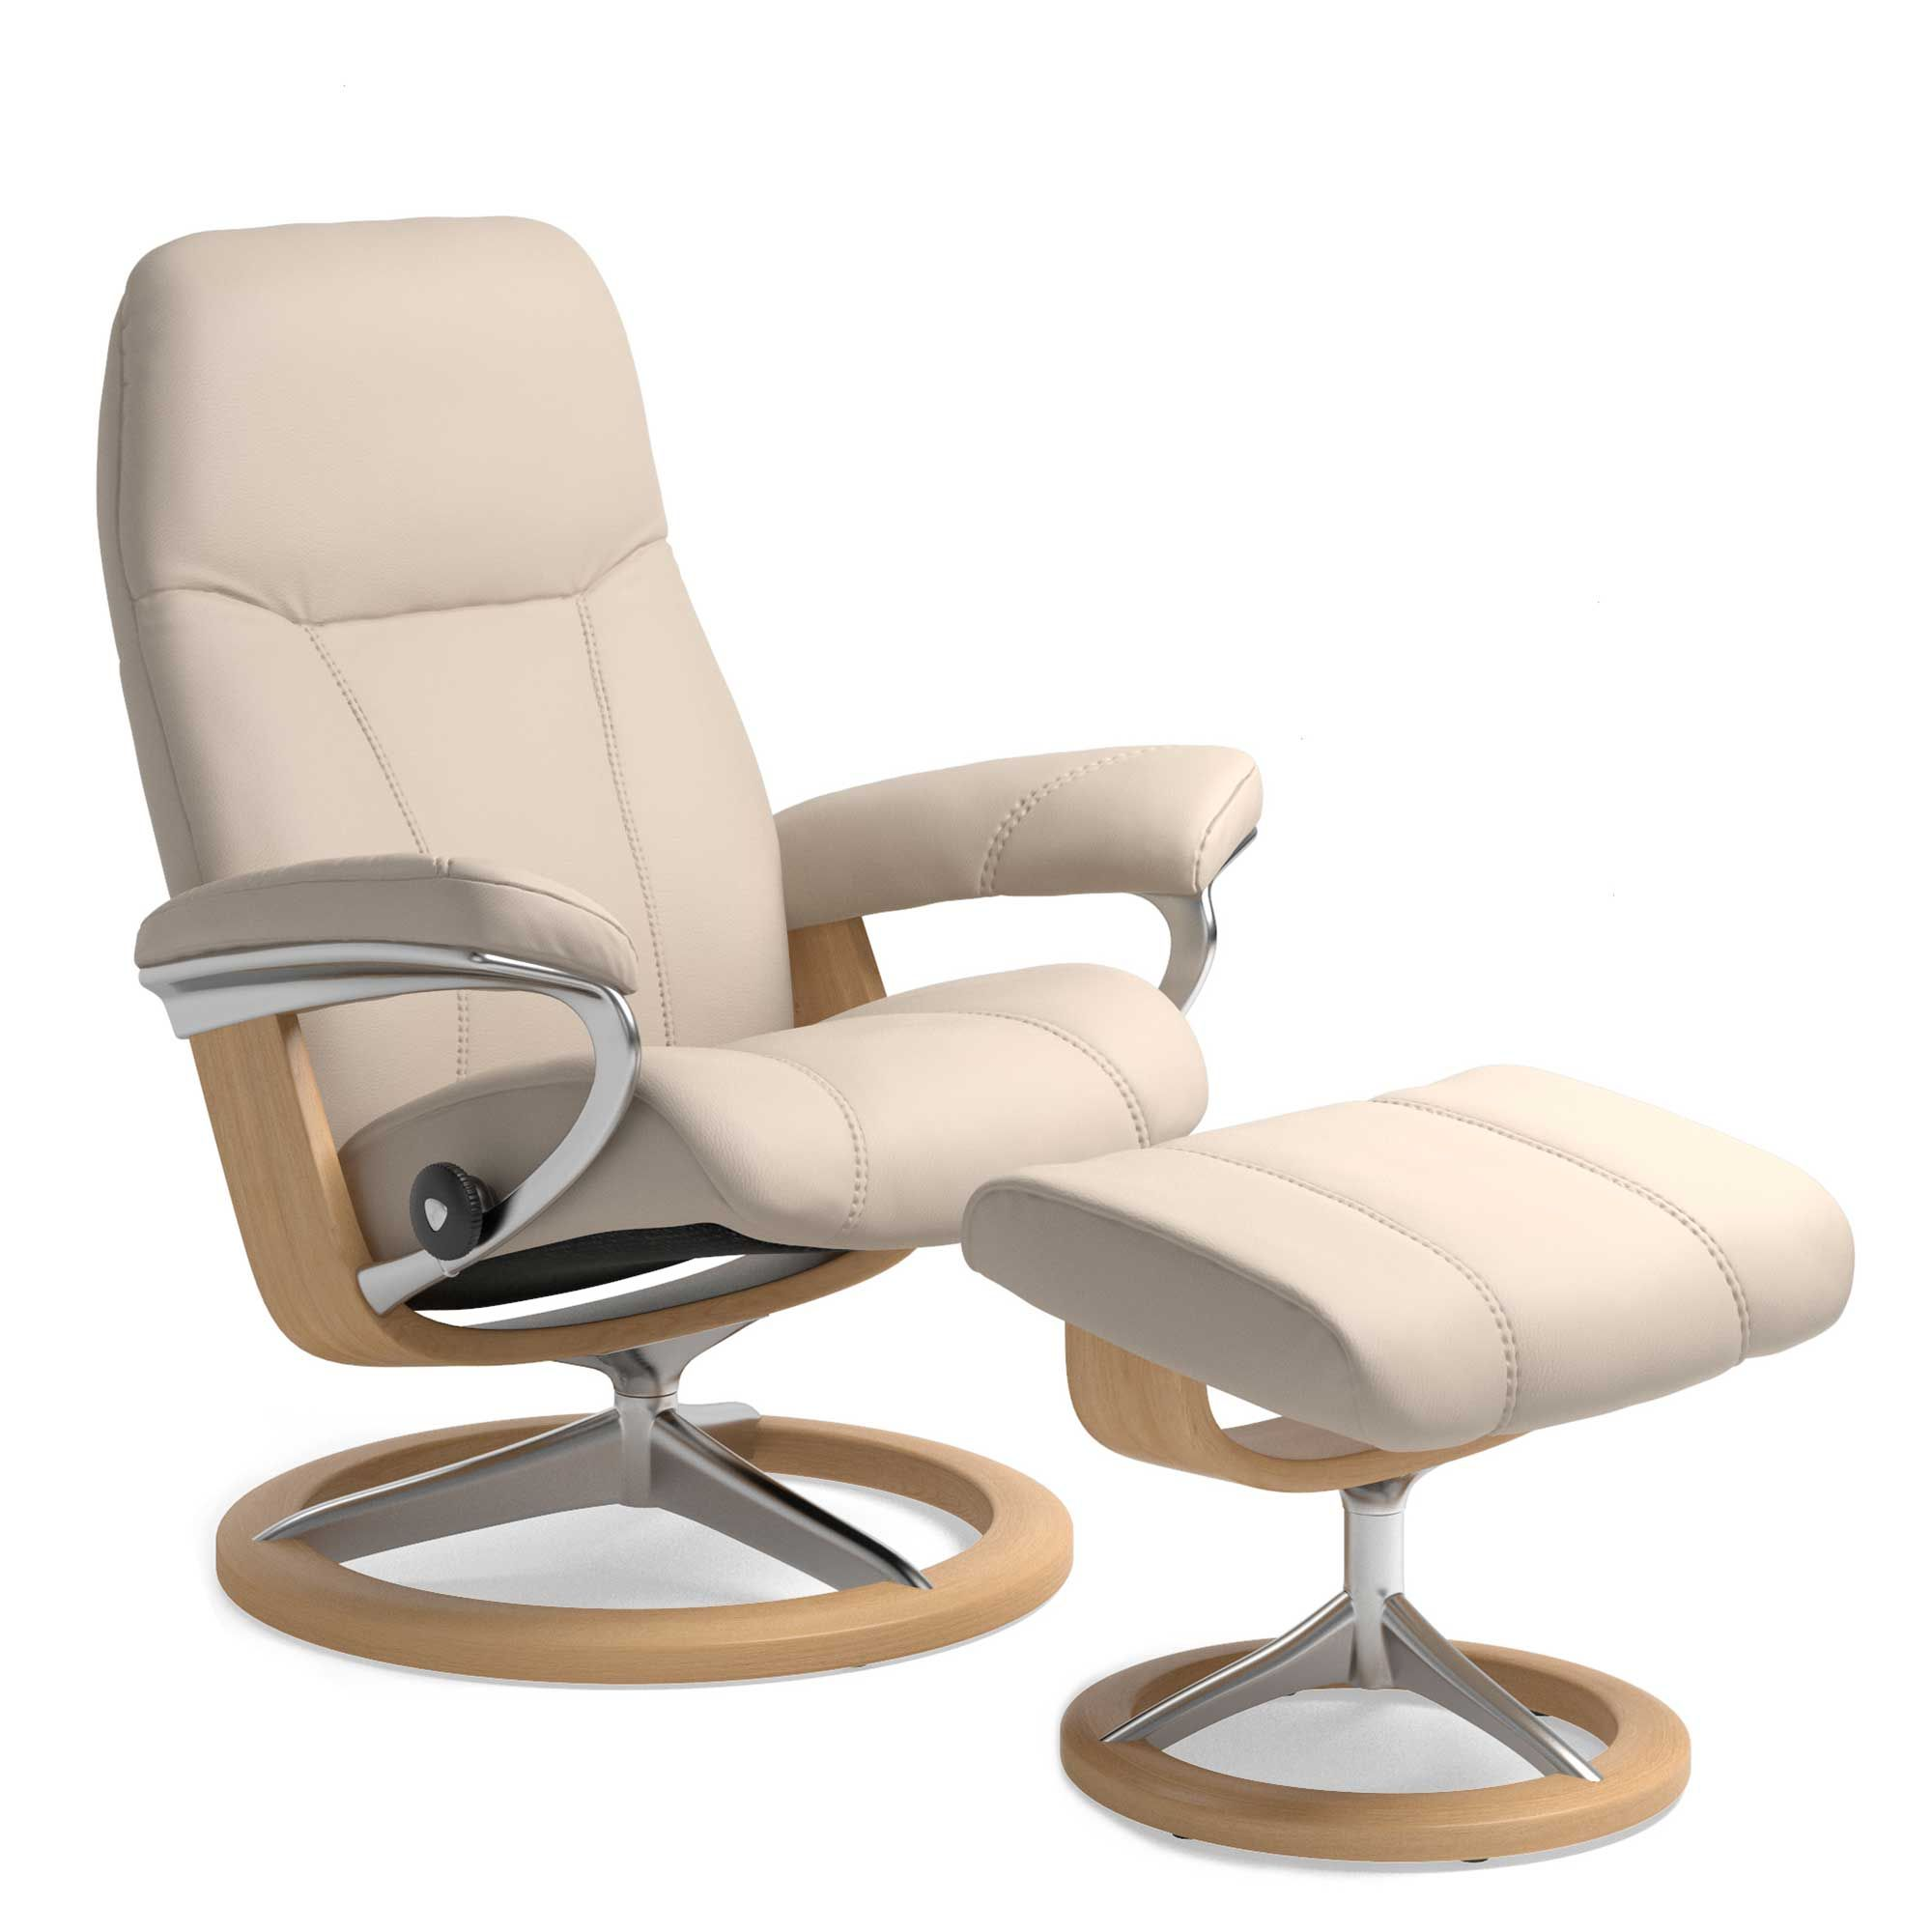 Stressless consul small chair and stool in batick leather - Stressless Consul Chair And Stool Batick Cream And Oak Signature Base Recliners Living